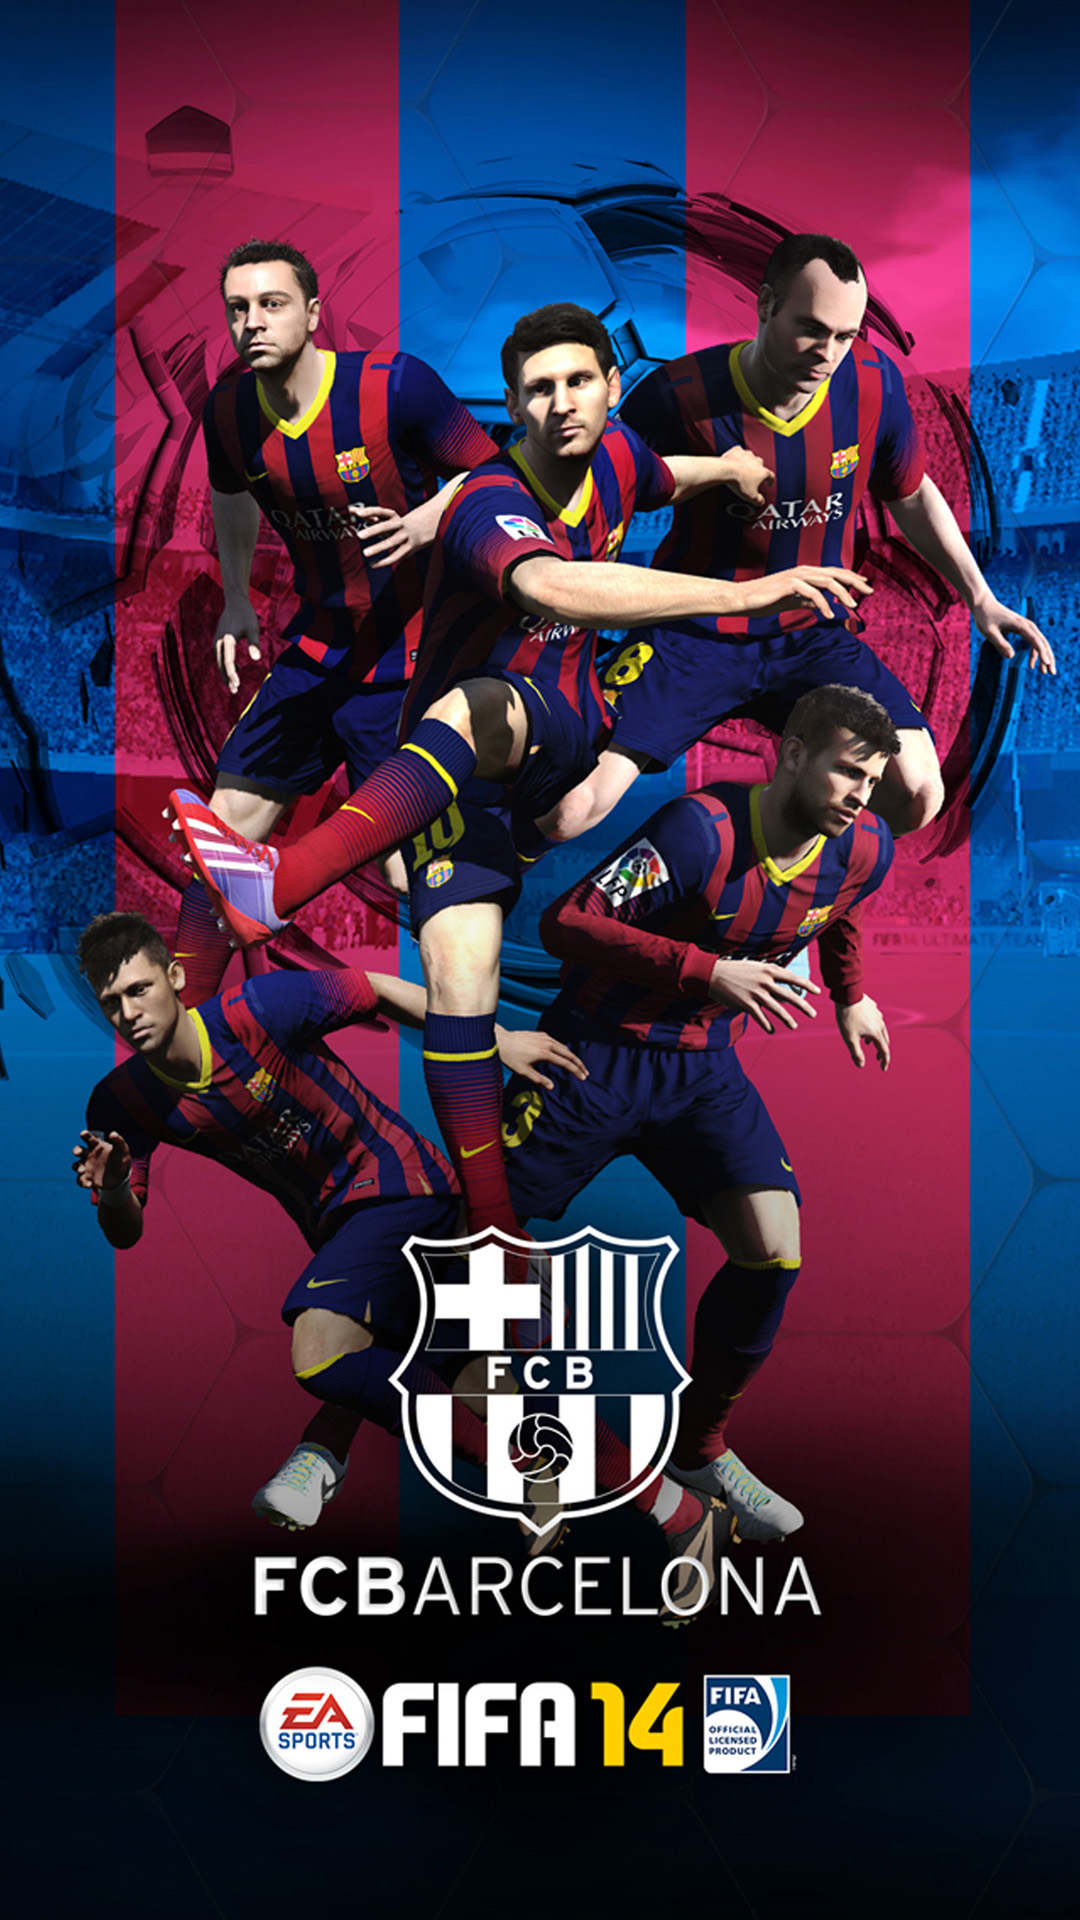 Wallpaper iphone barcelona - Iphone 6 Plus Fifa 14 Barcelona Hd Wallpaper